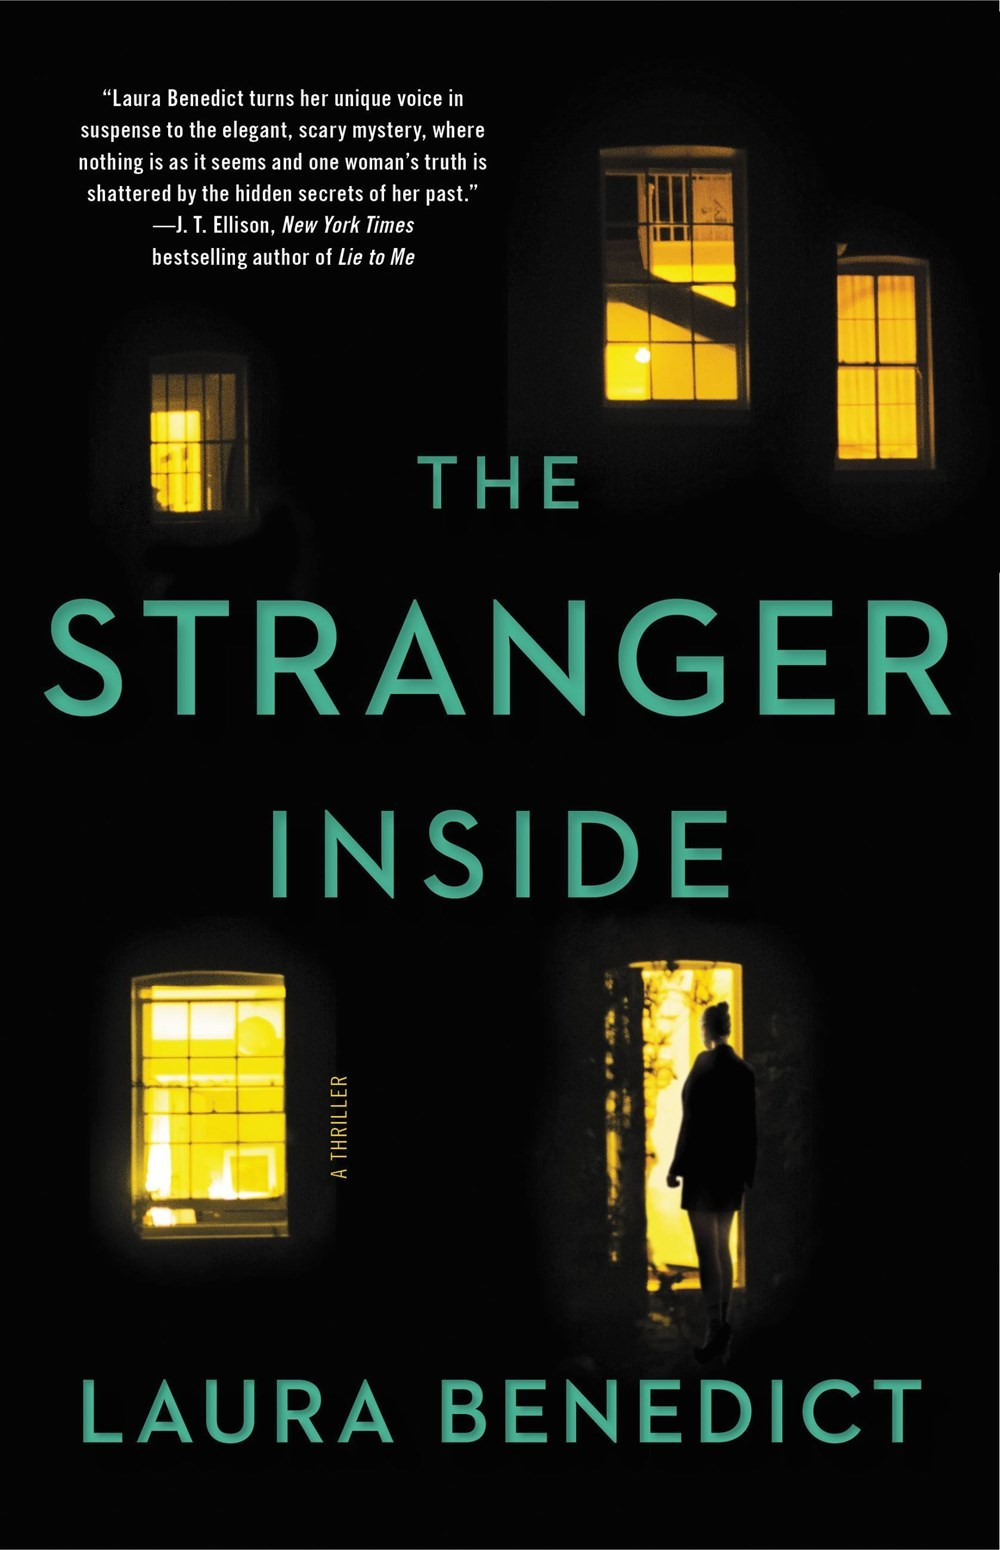 The Stranger Inside by Laura Benedict